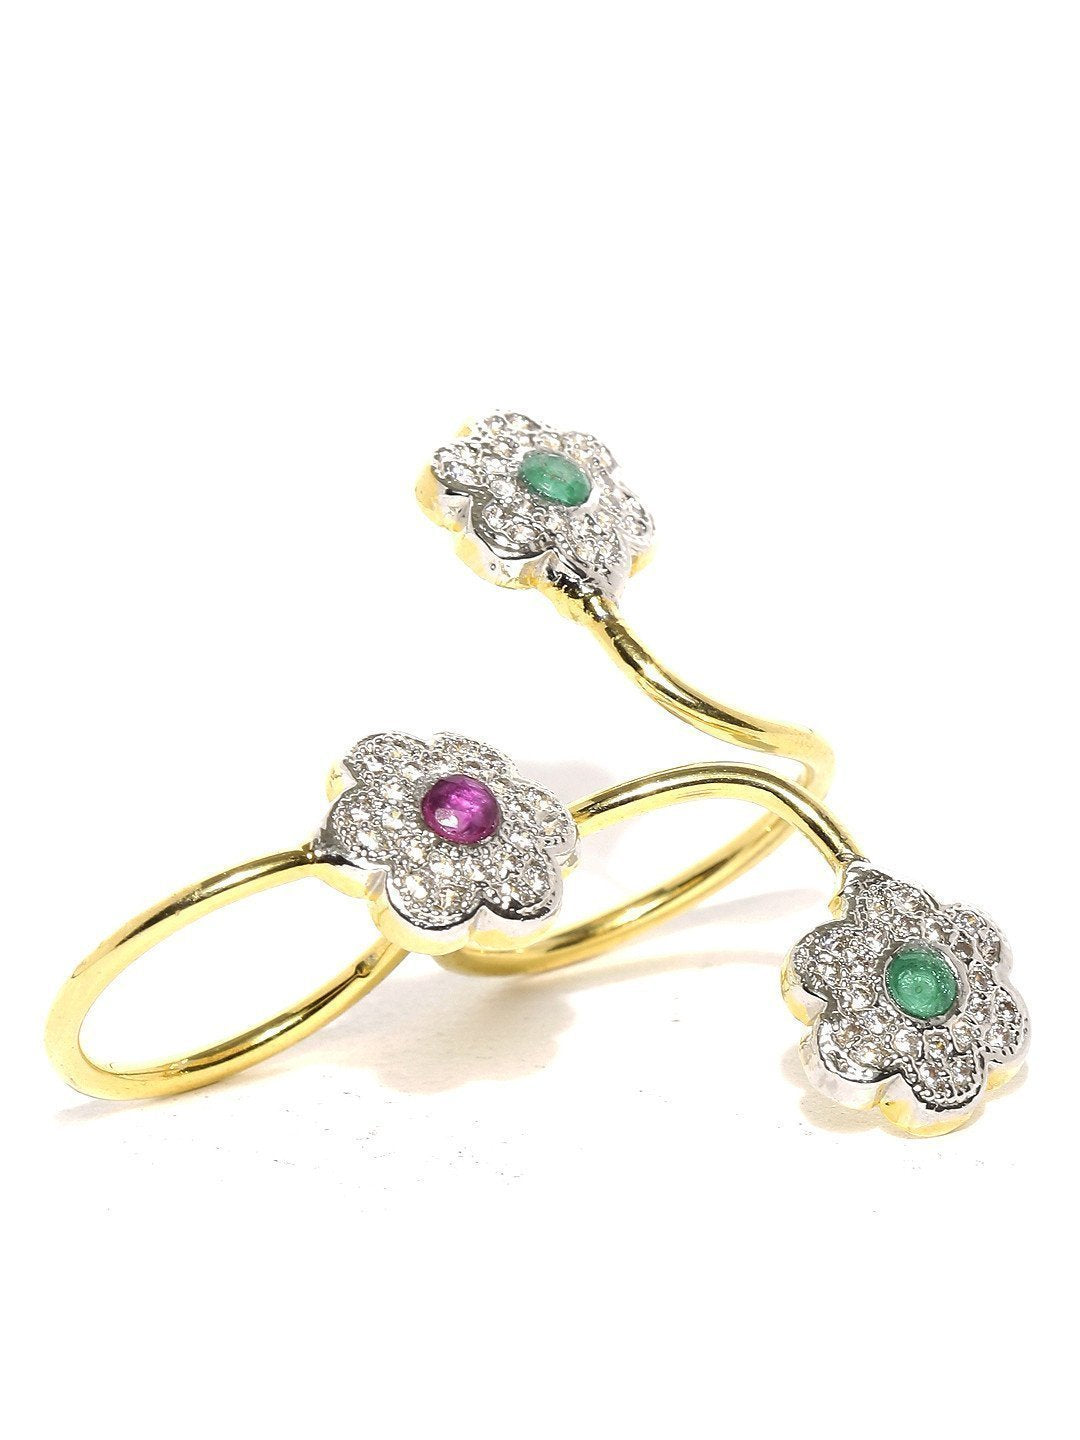 Floral Cubic Zirconia Dual Finger Ring - Zpfk5788